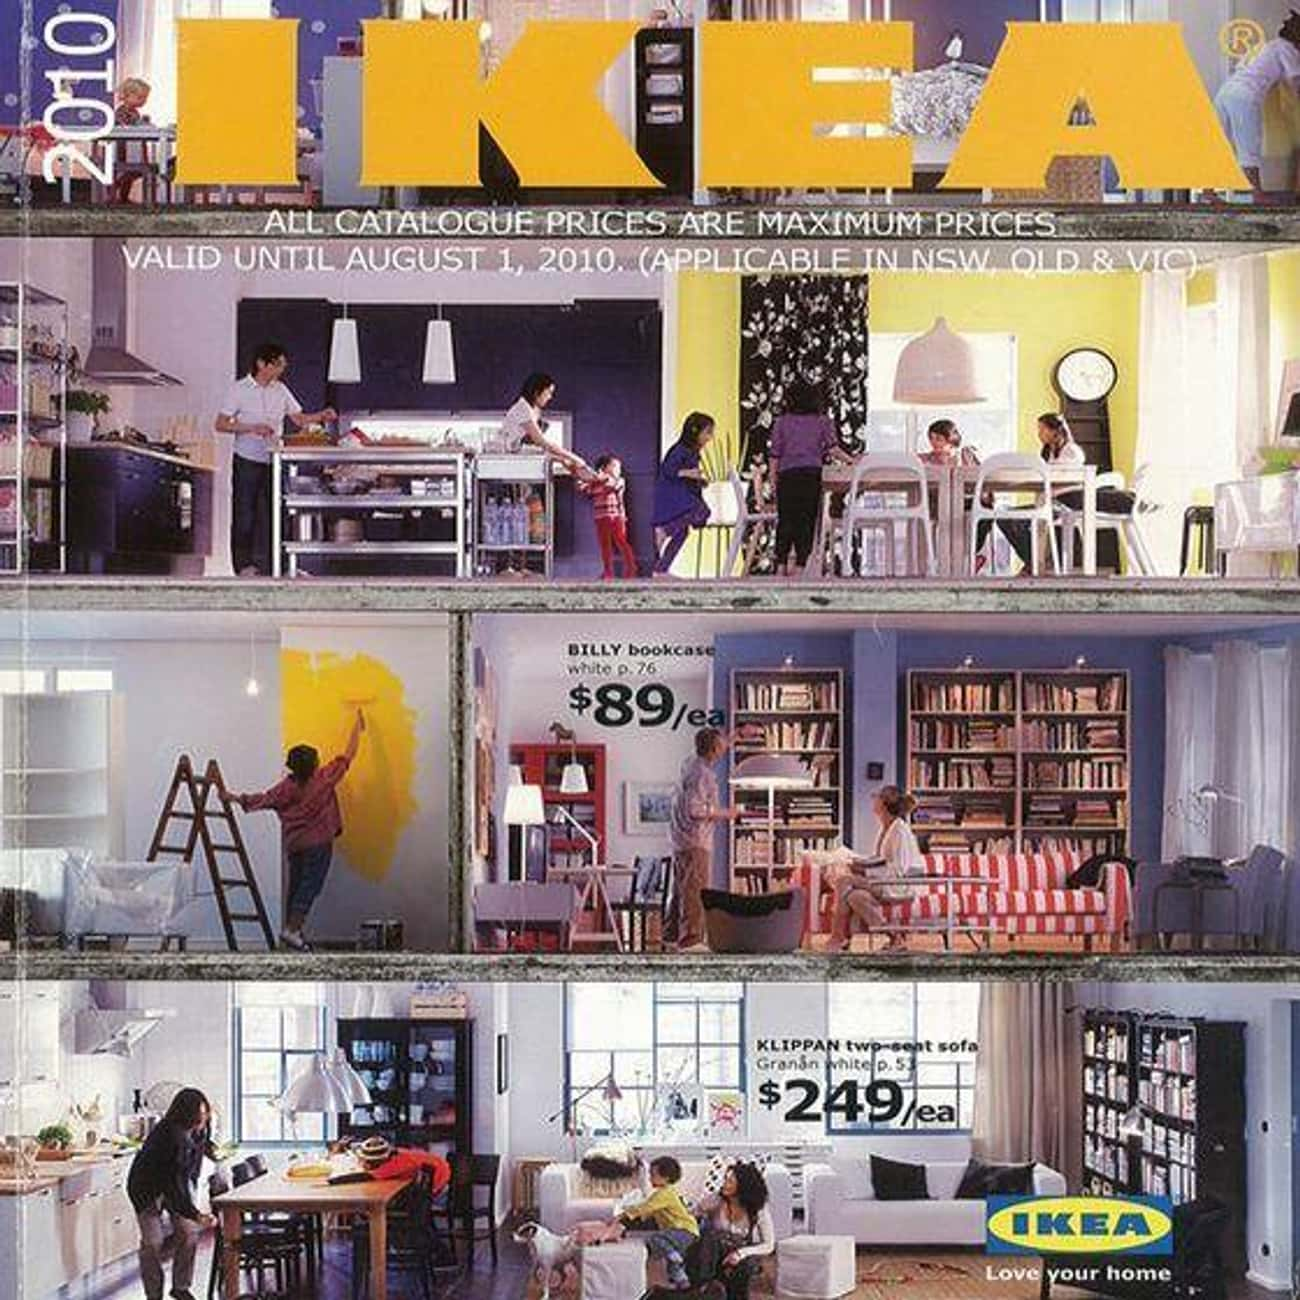 The 2010 IKEA Catalog Was Almost as Popular as the Bible